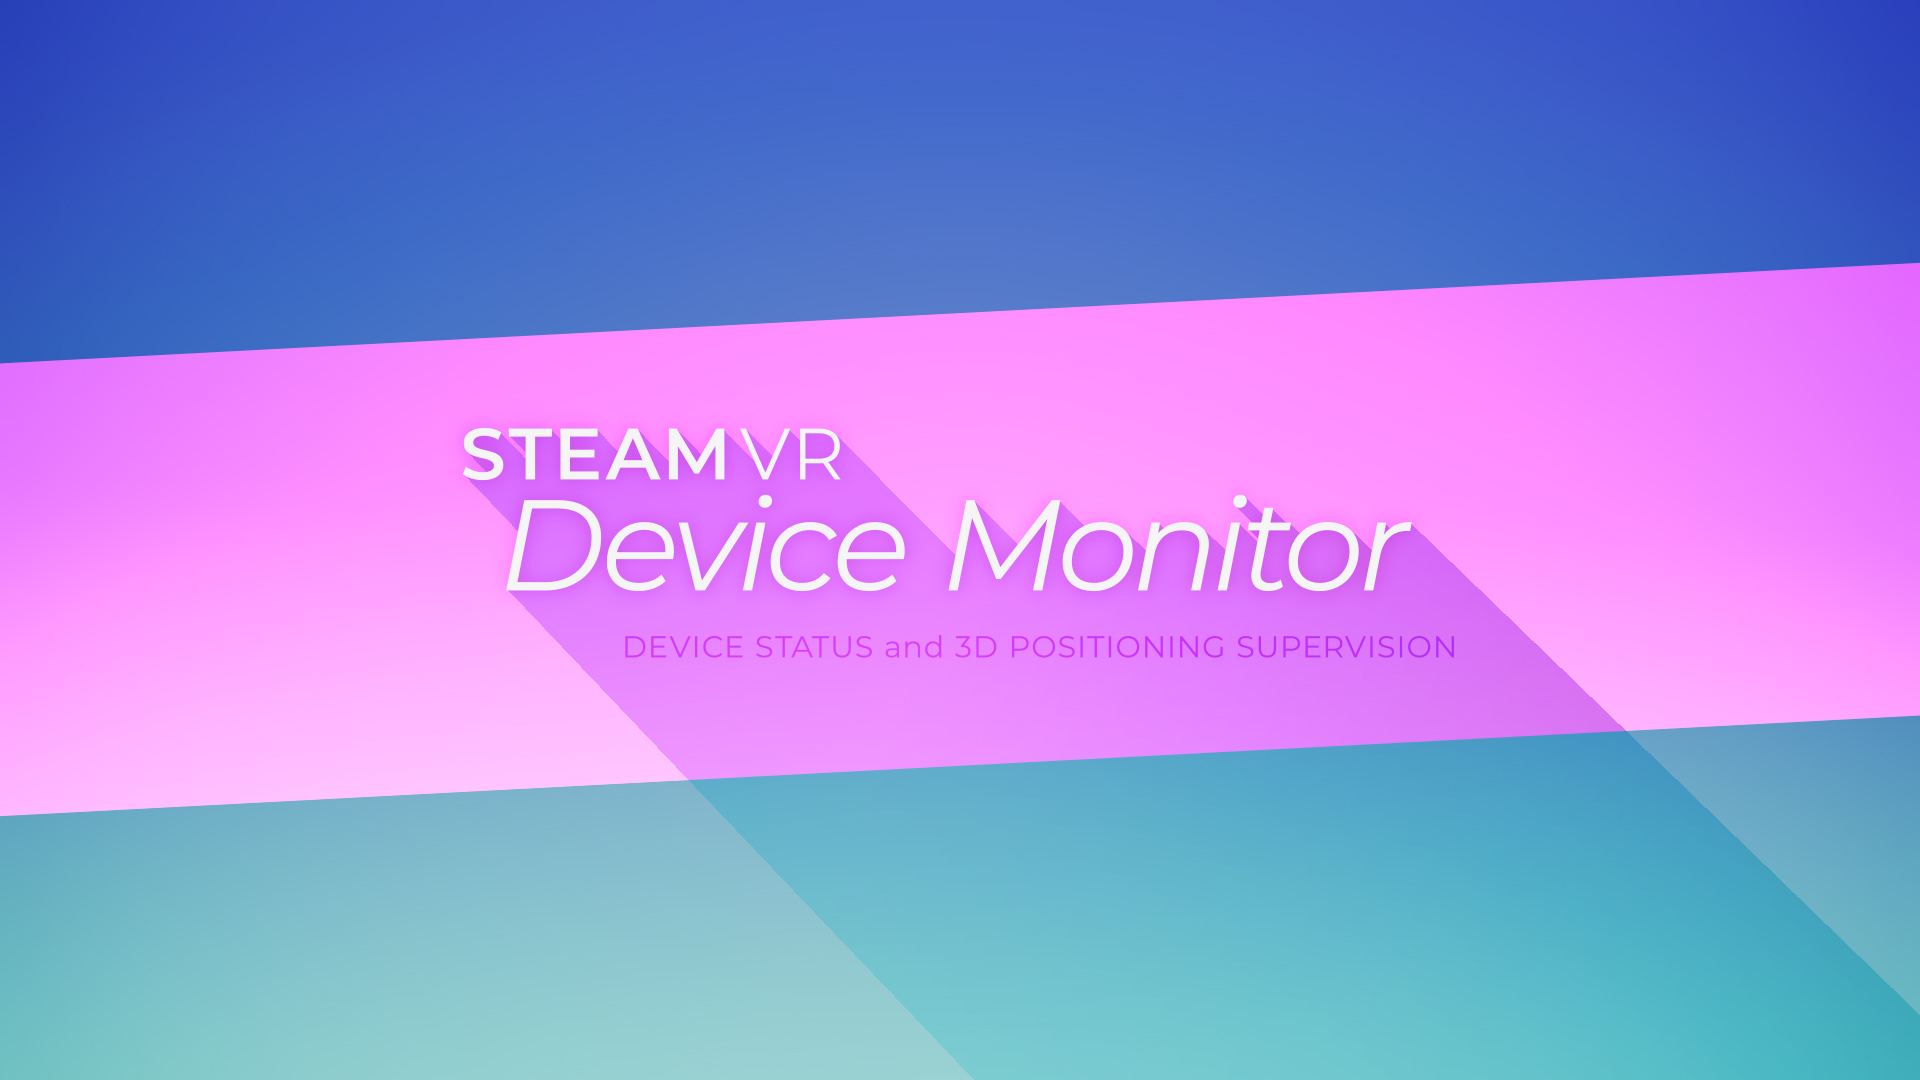 Device Monitor for SteamVR